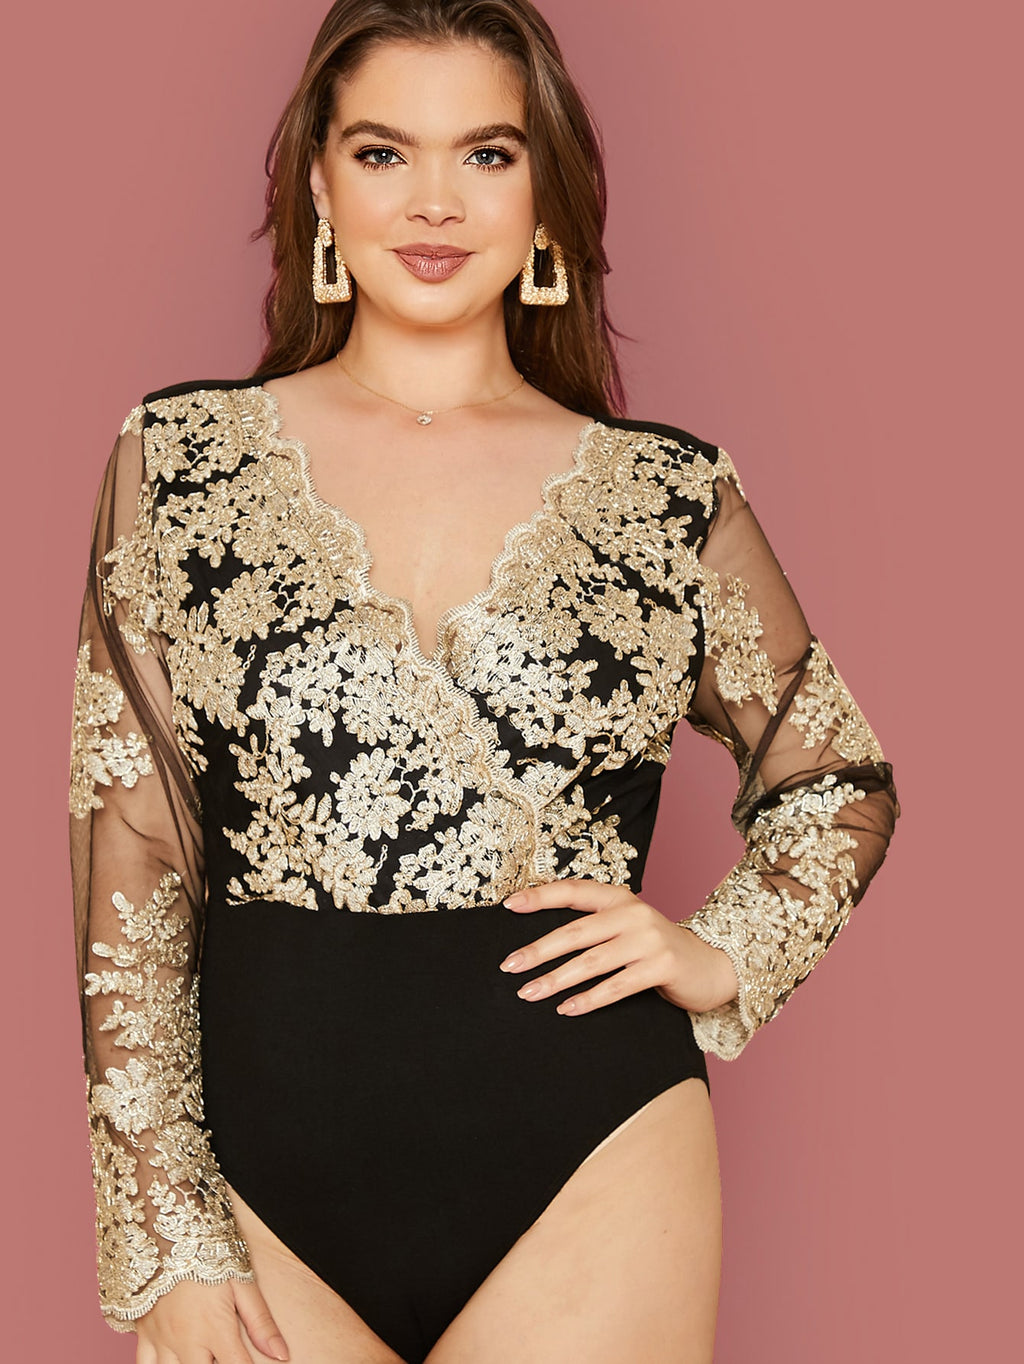 Plus Size Elegant Embroidery Mesh Bodysuit Top